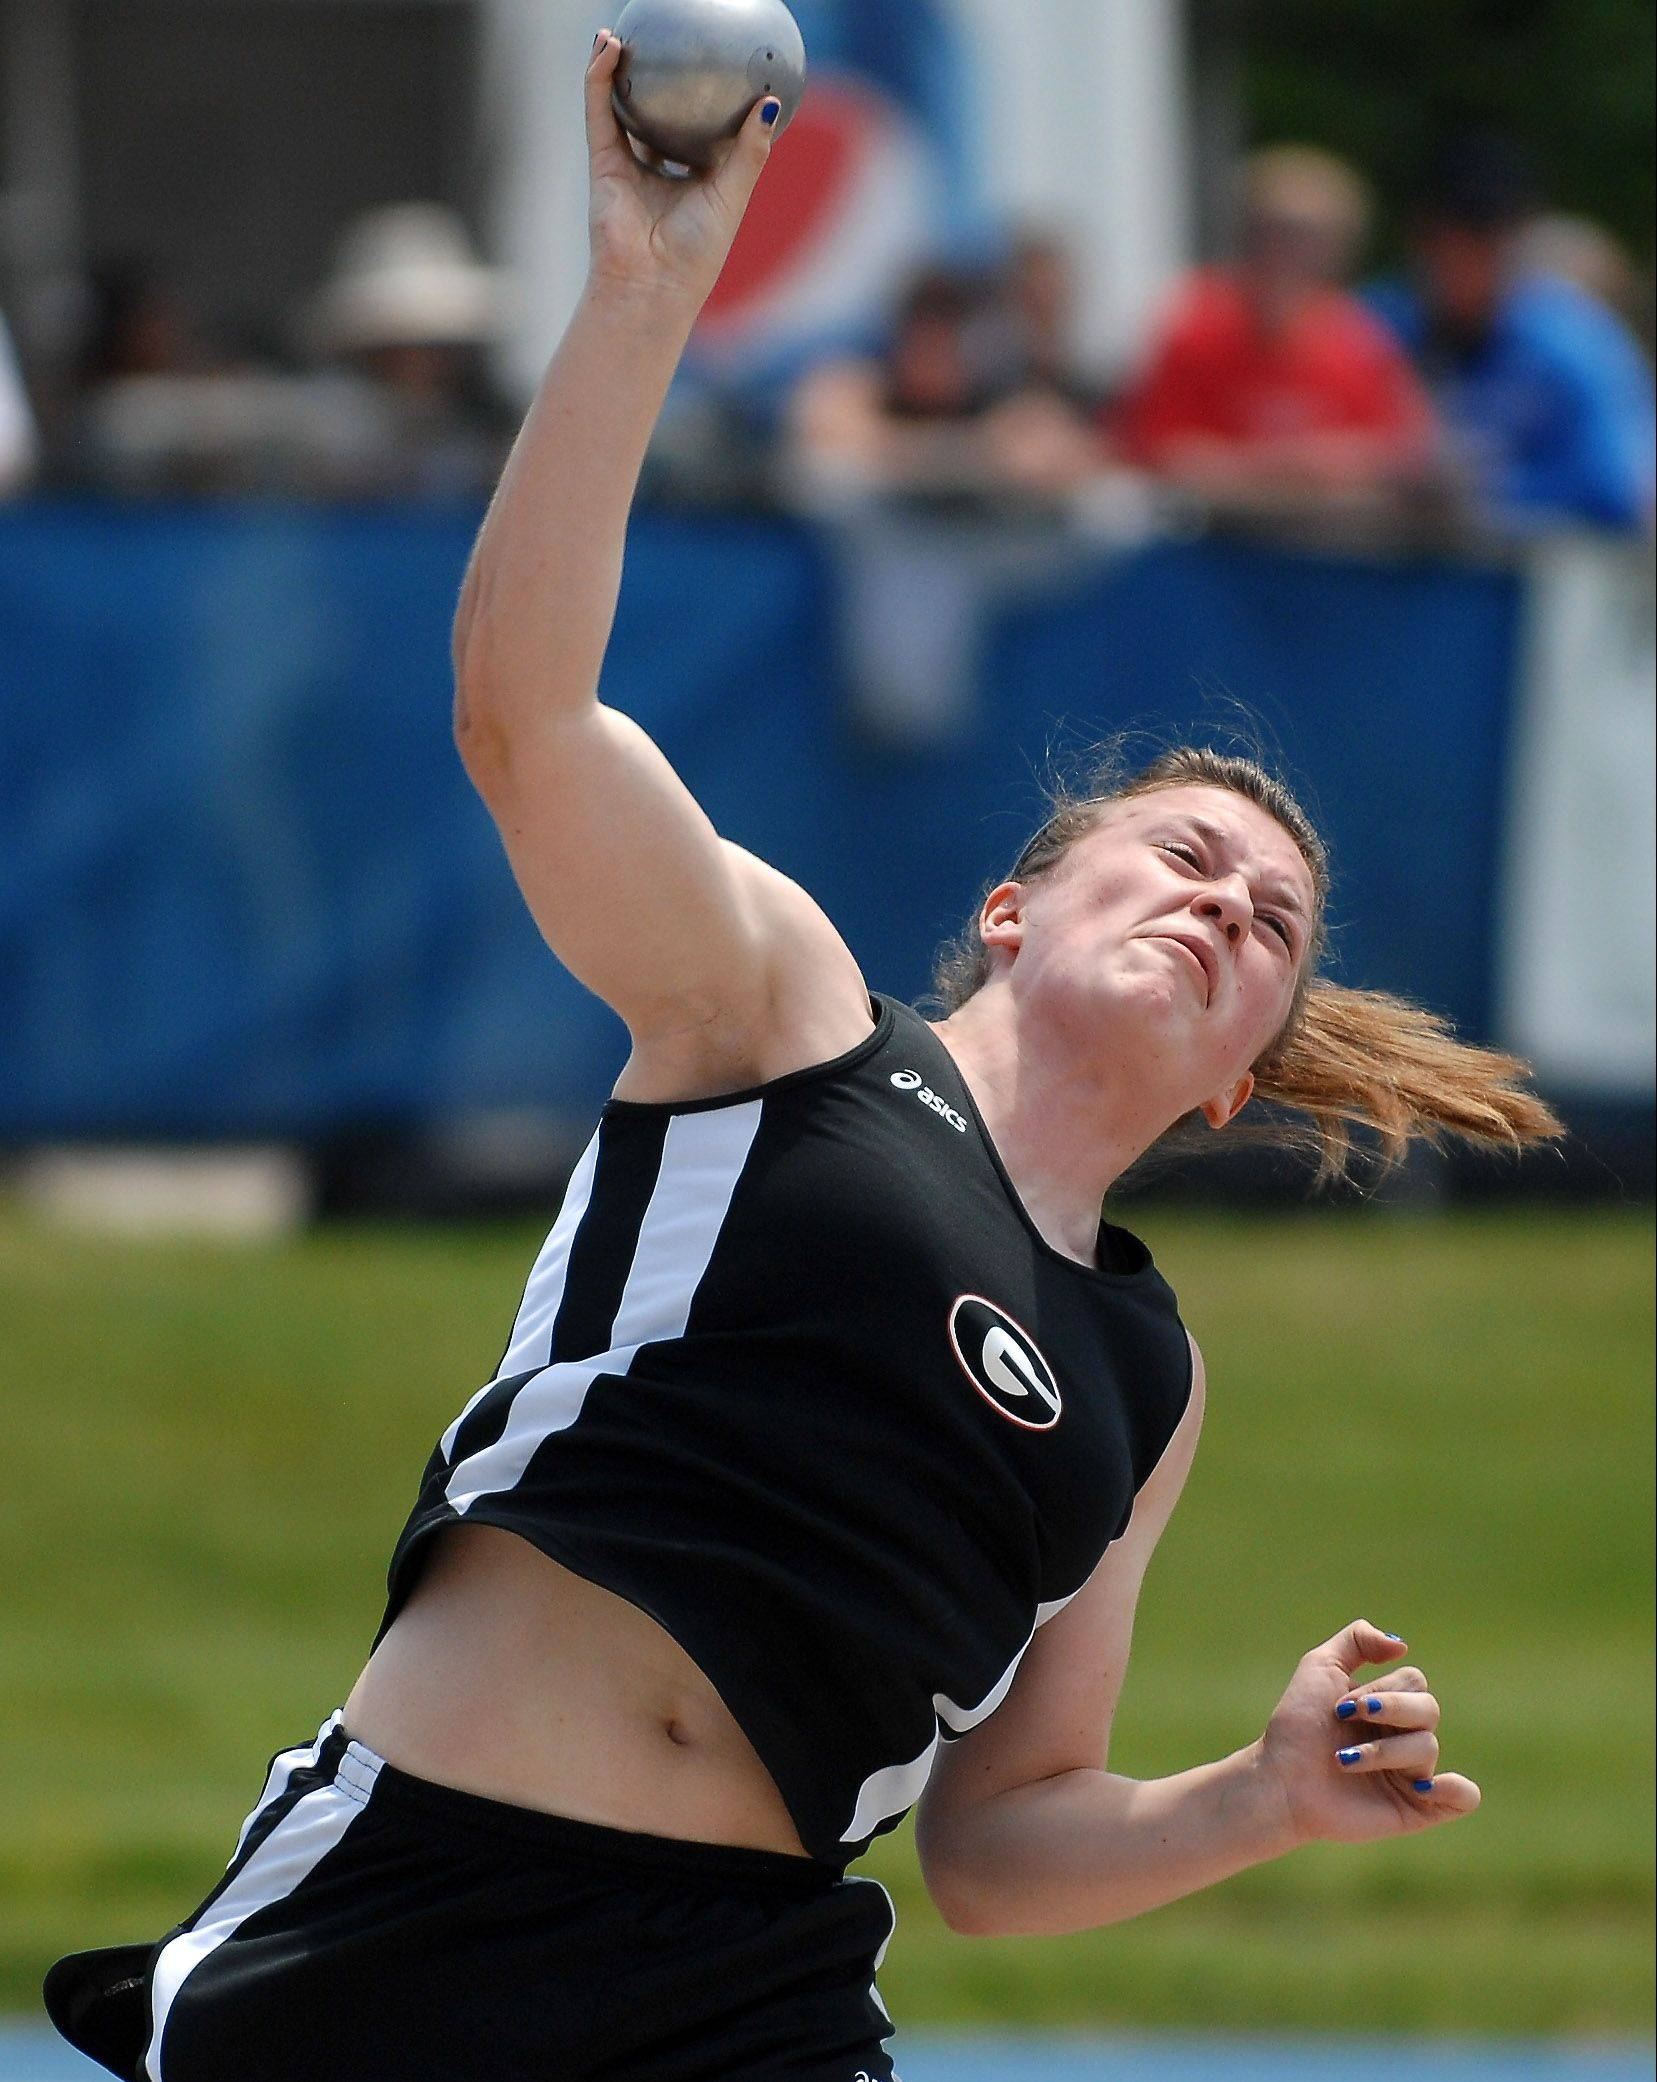 Grant's Melissa Dunham is headed to Dartmouth, where she'll continue to compete in the throws.